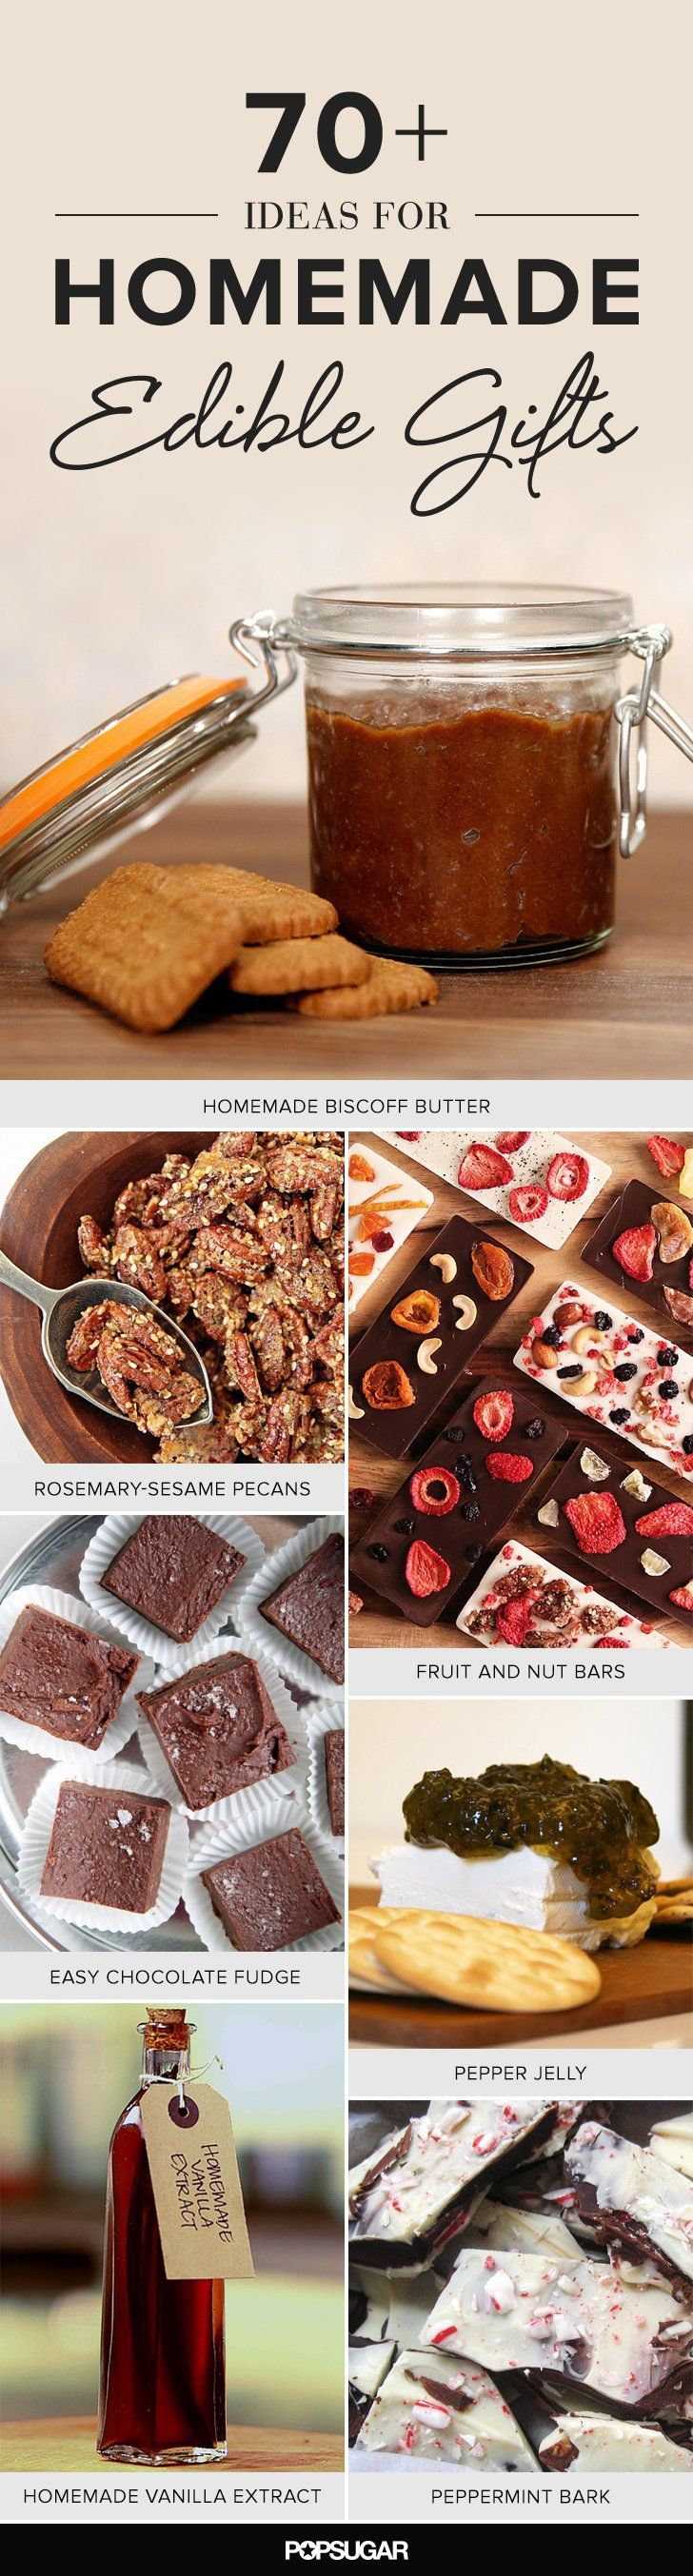 Homemade edible gifts for all your holiday giving!